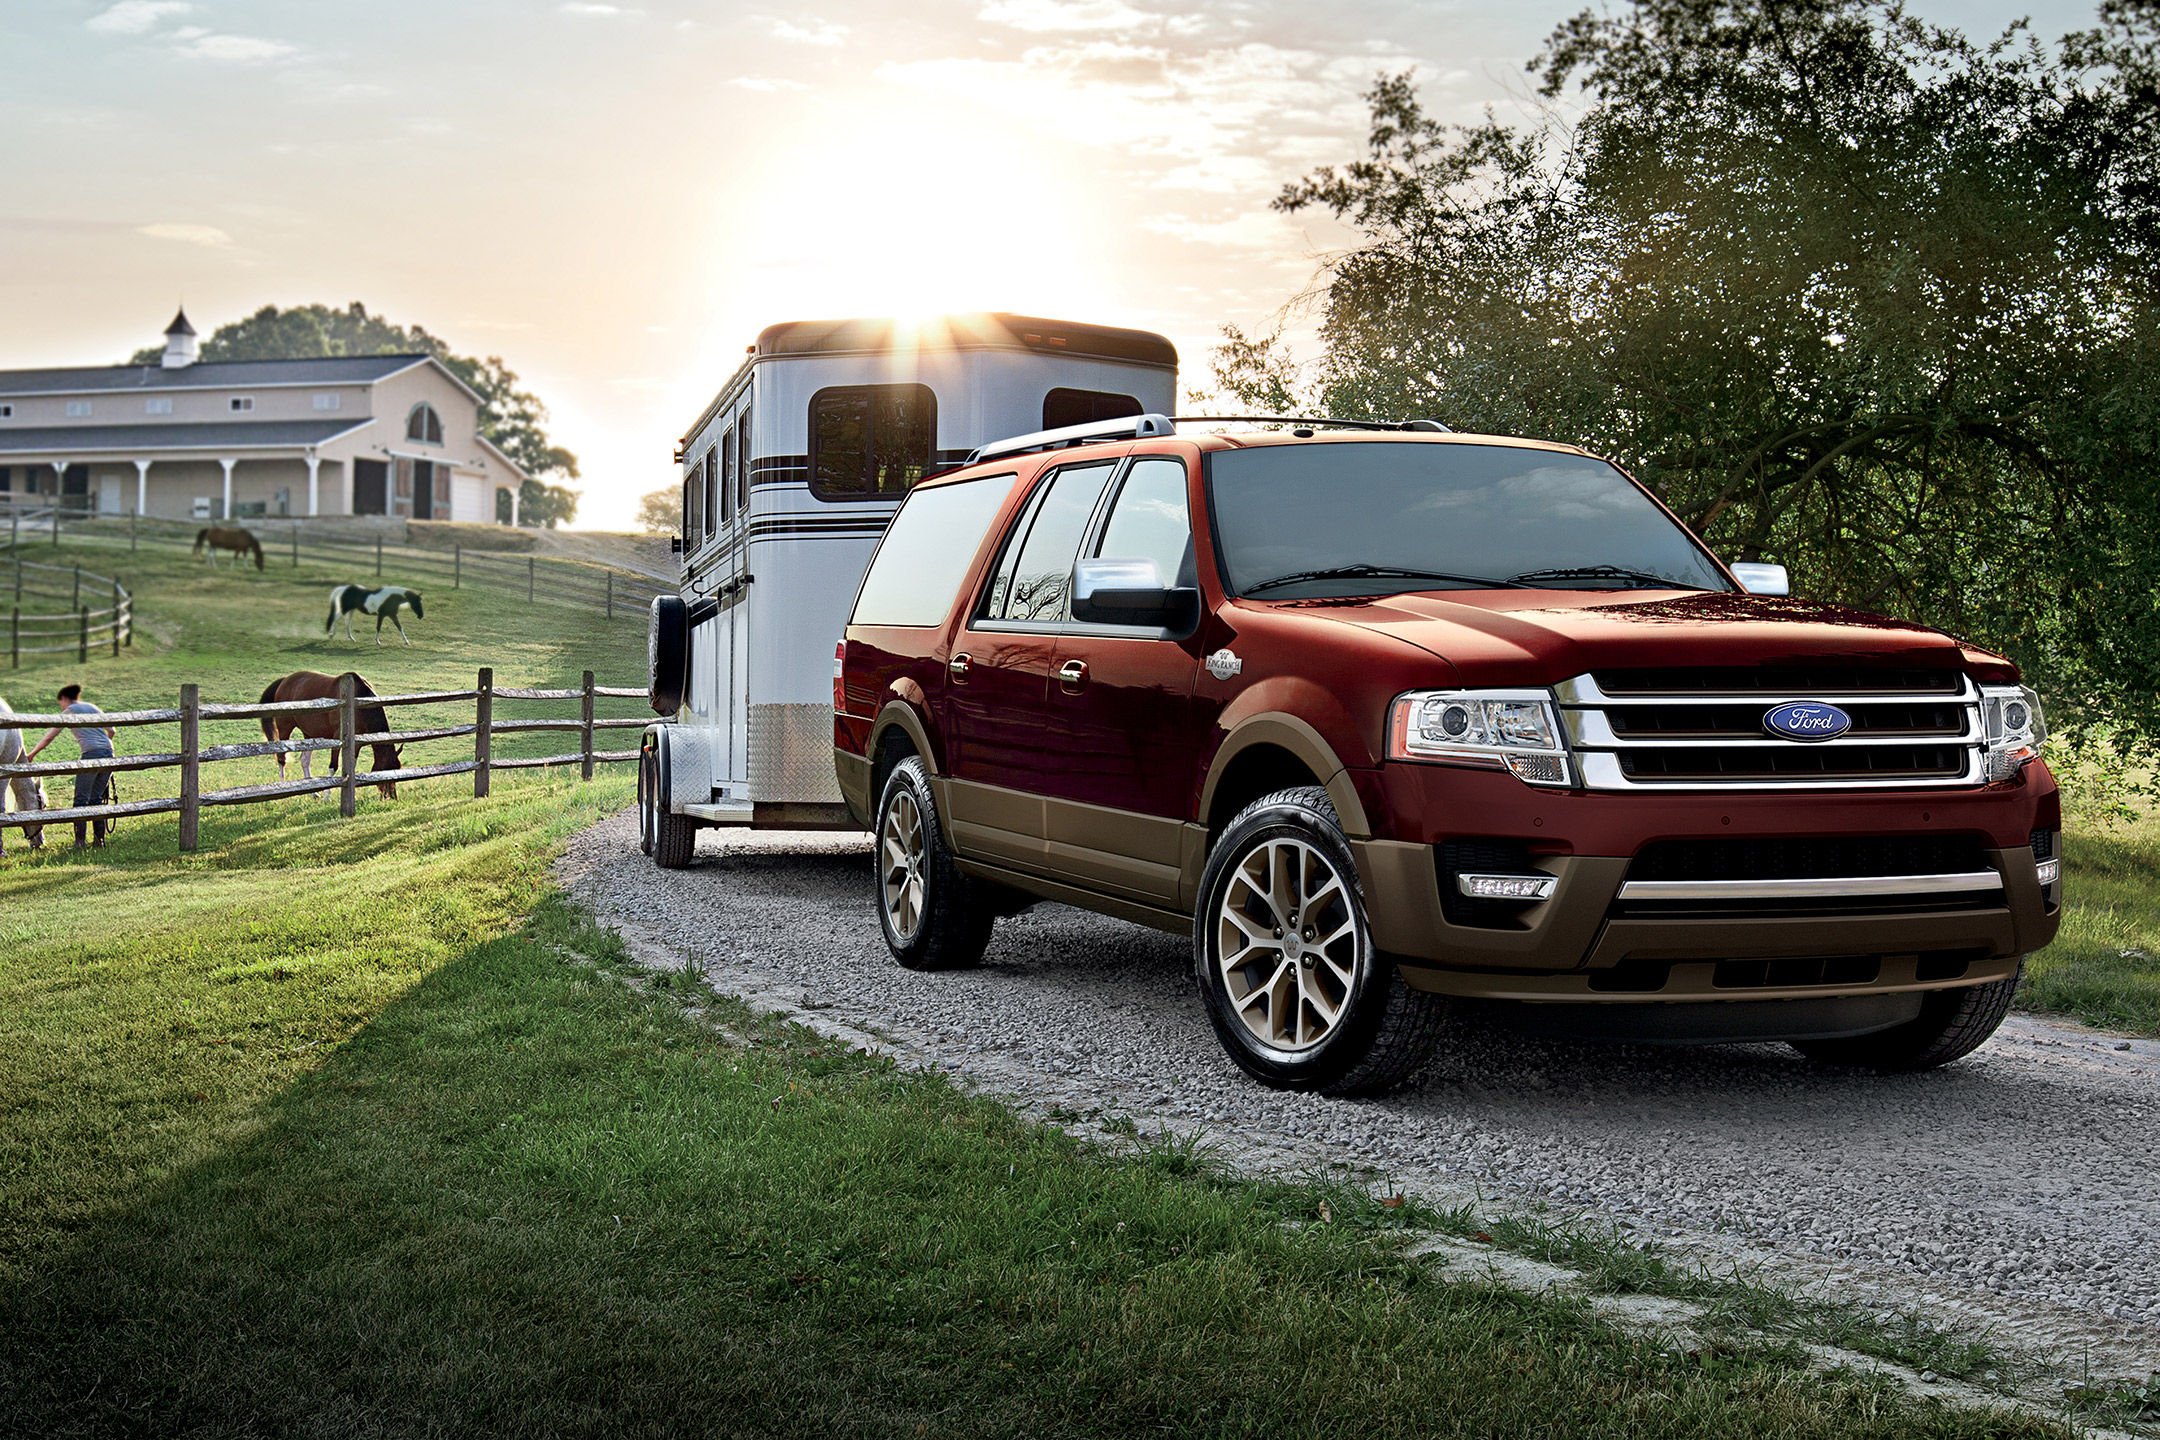 F250 Towing Capacity >> 2017 Ford Expedition Overview - The News Wheel